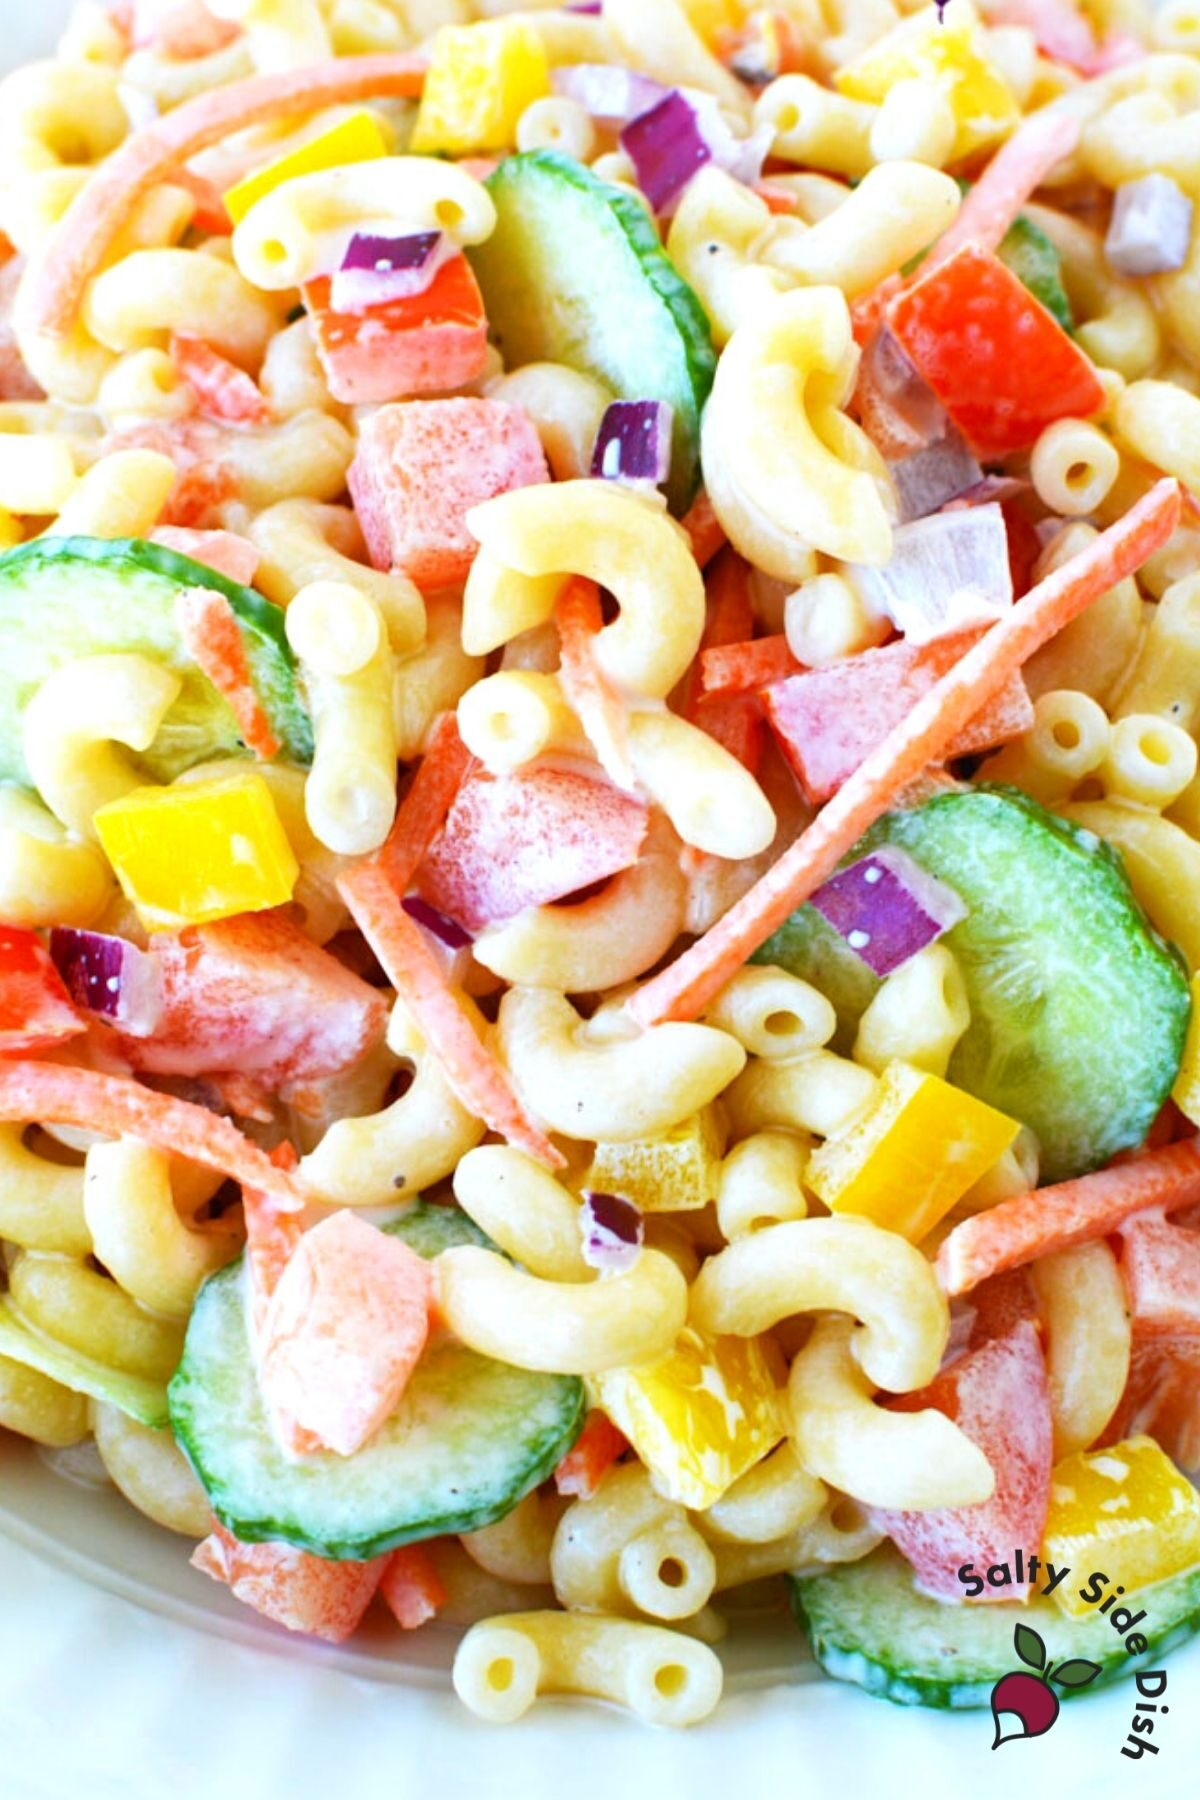 pile of cooked macaroni and fresh vegetables in a salad.